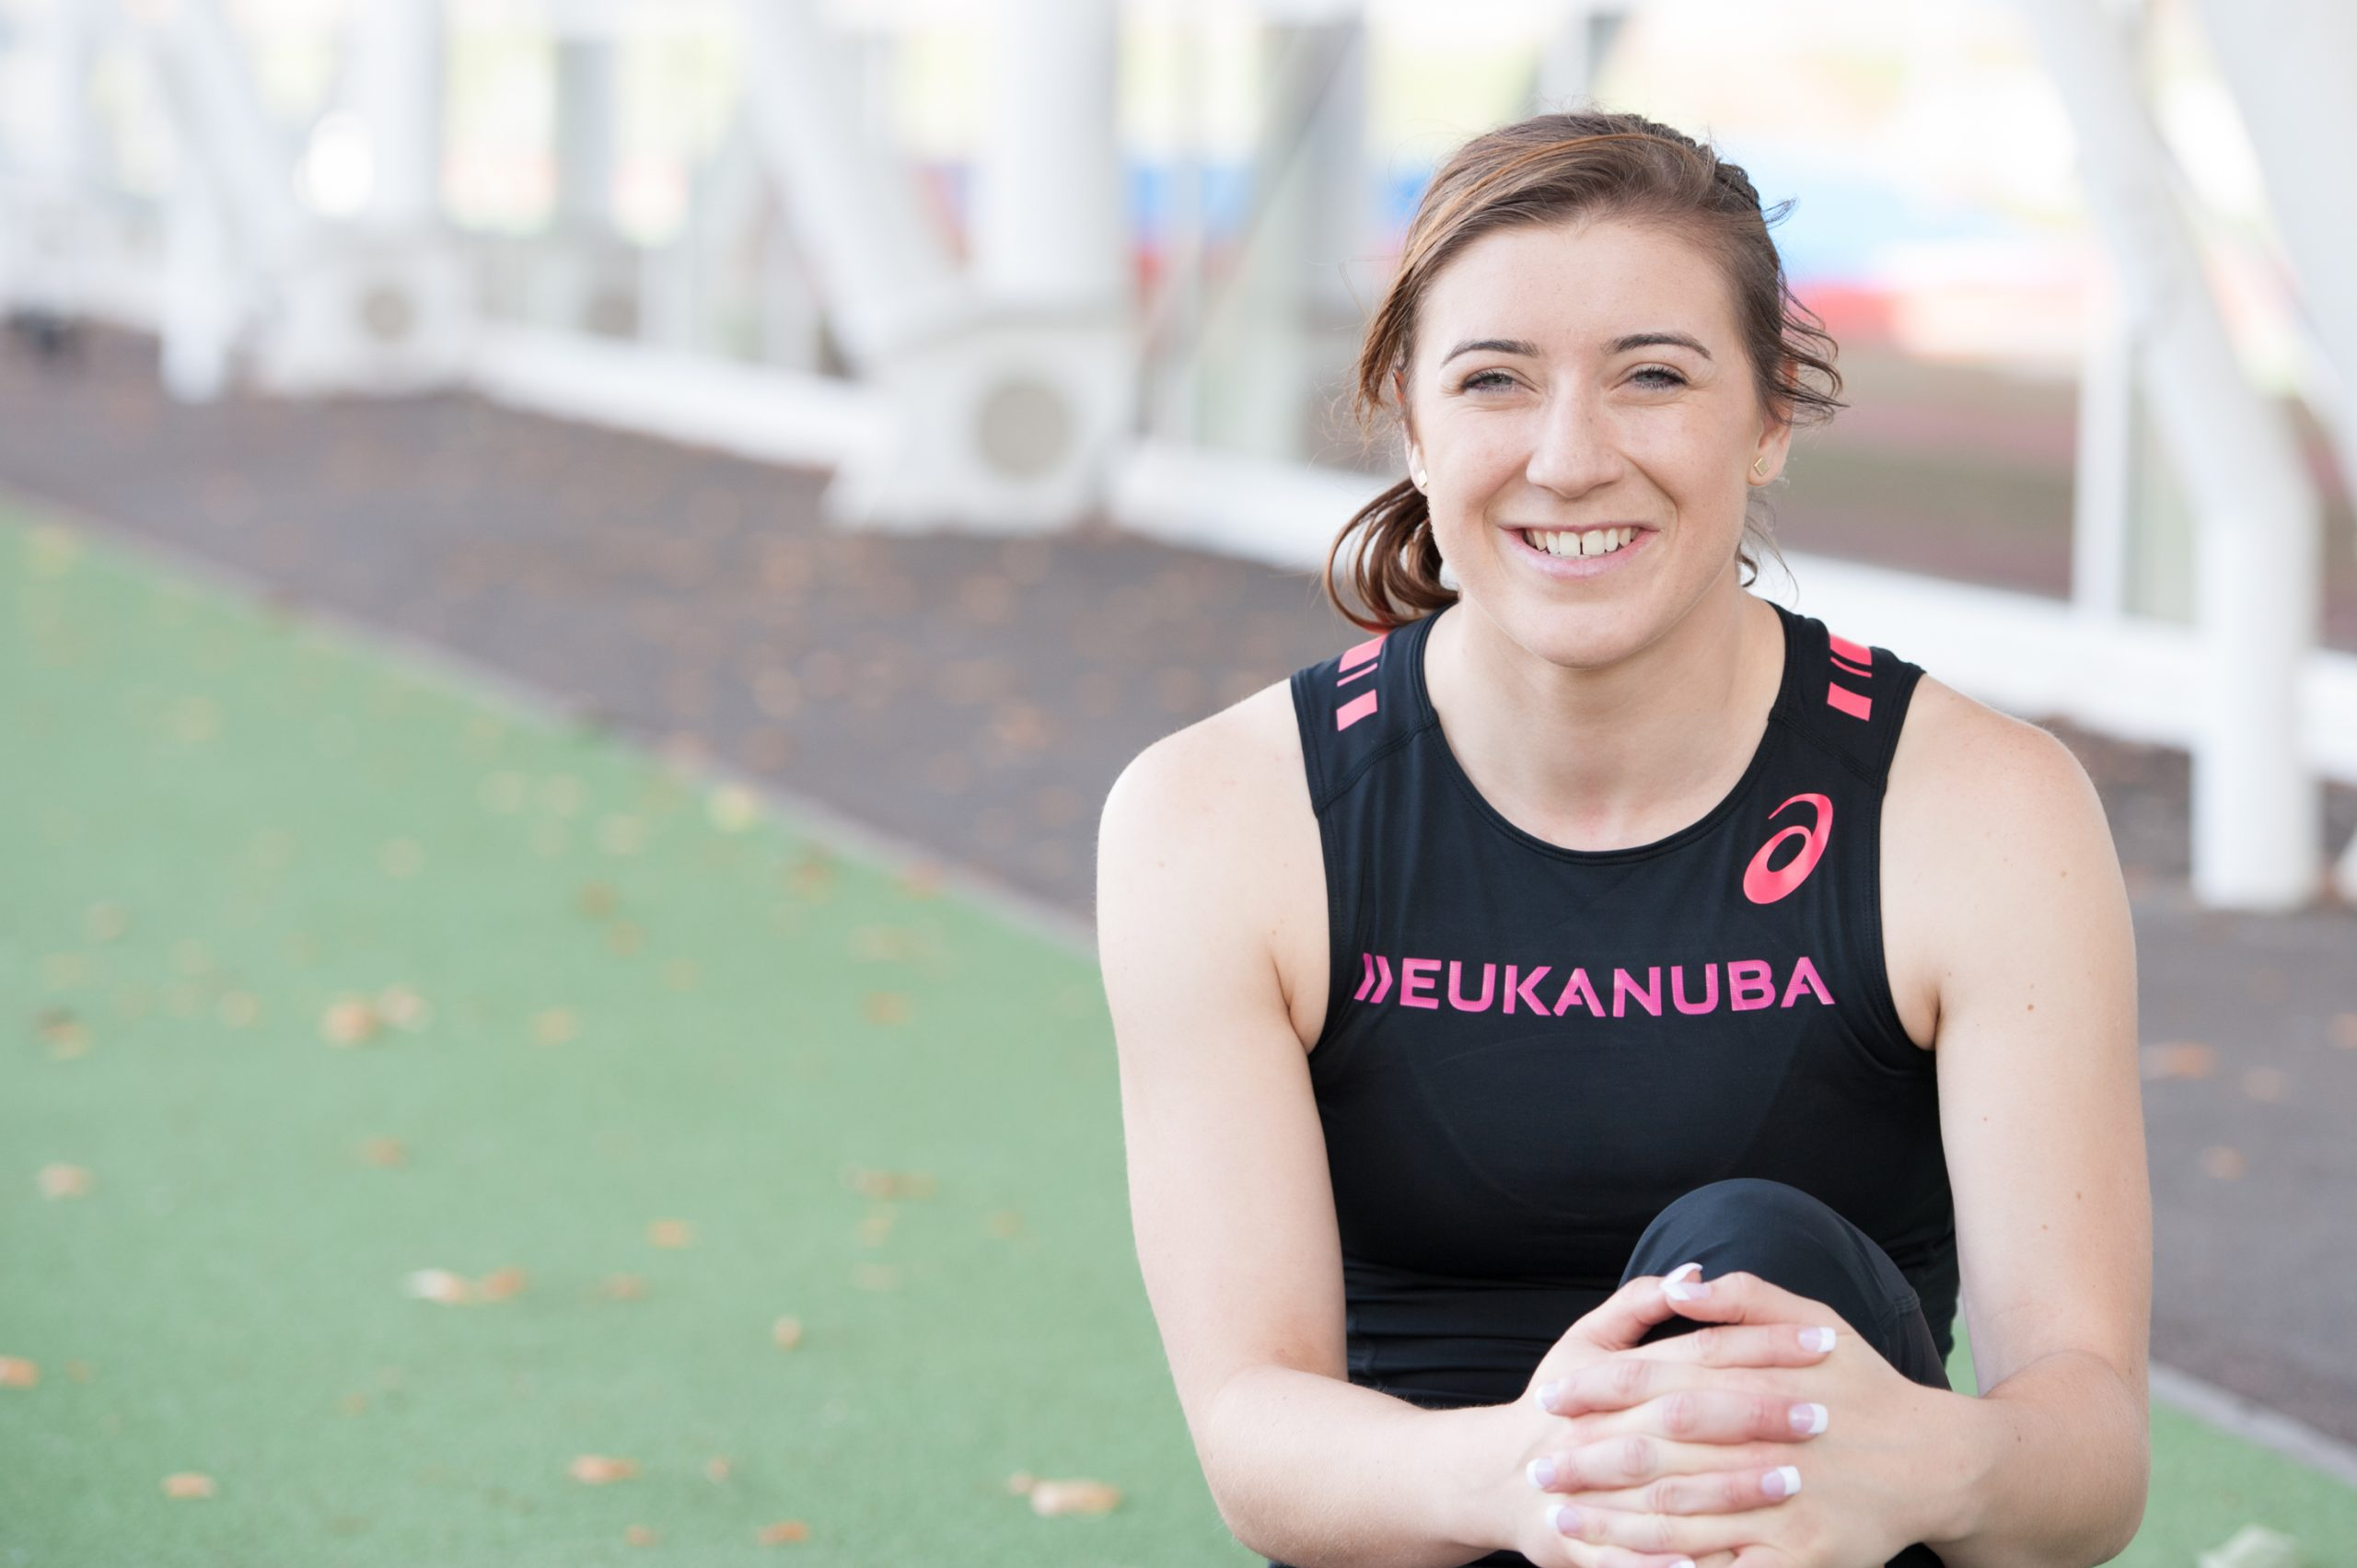 INSPIRATIONAL BRITISH PARALYMPIC SPRINTER SIGNS SPONSORSHIP DEAL WITH ASICS